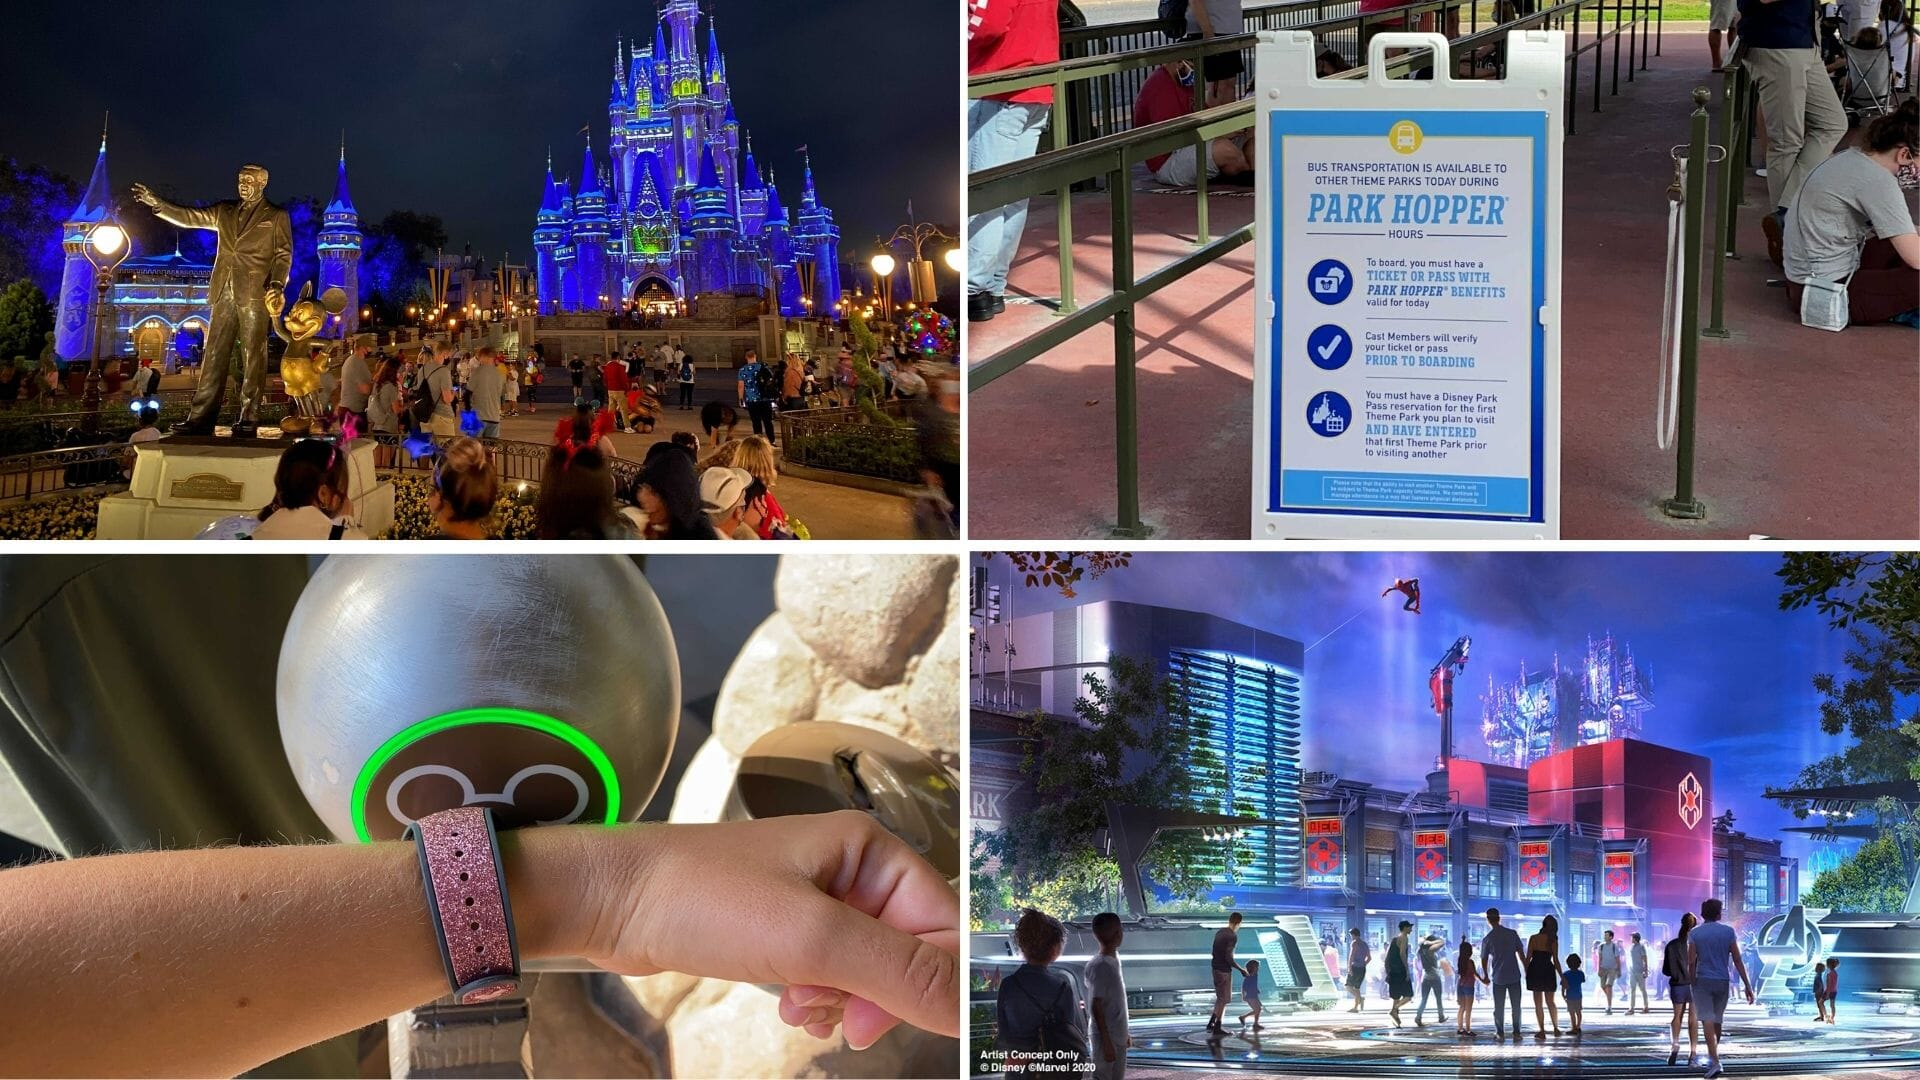 Wdwnt Daily Recap (1/1/21): Upcoming 2021 Attractions List